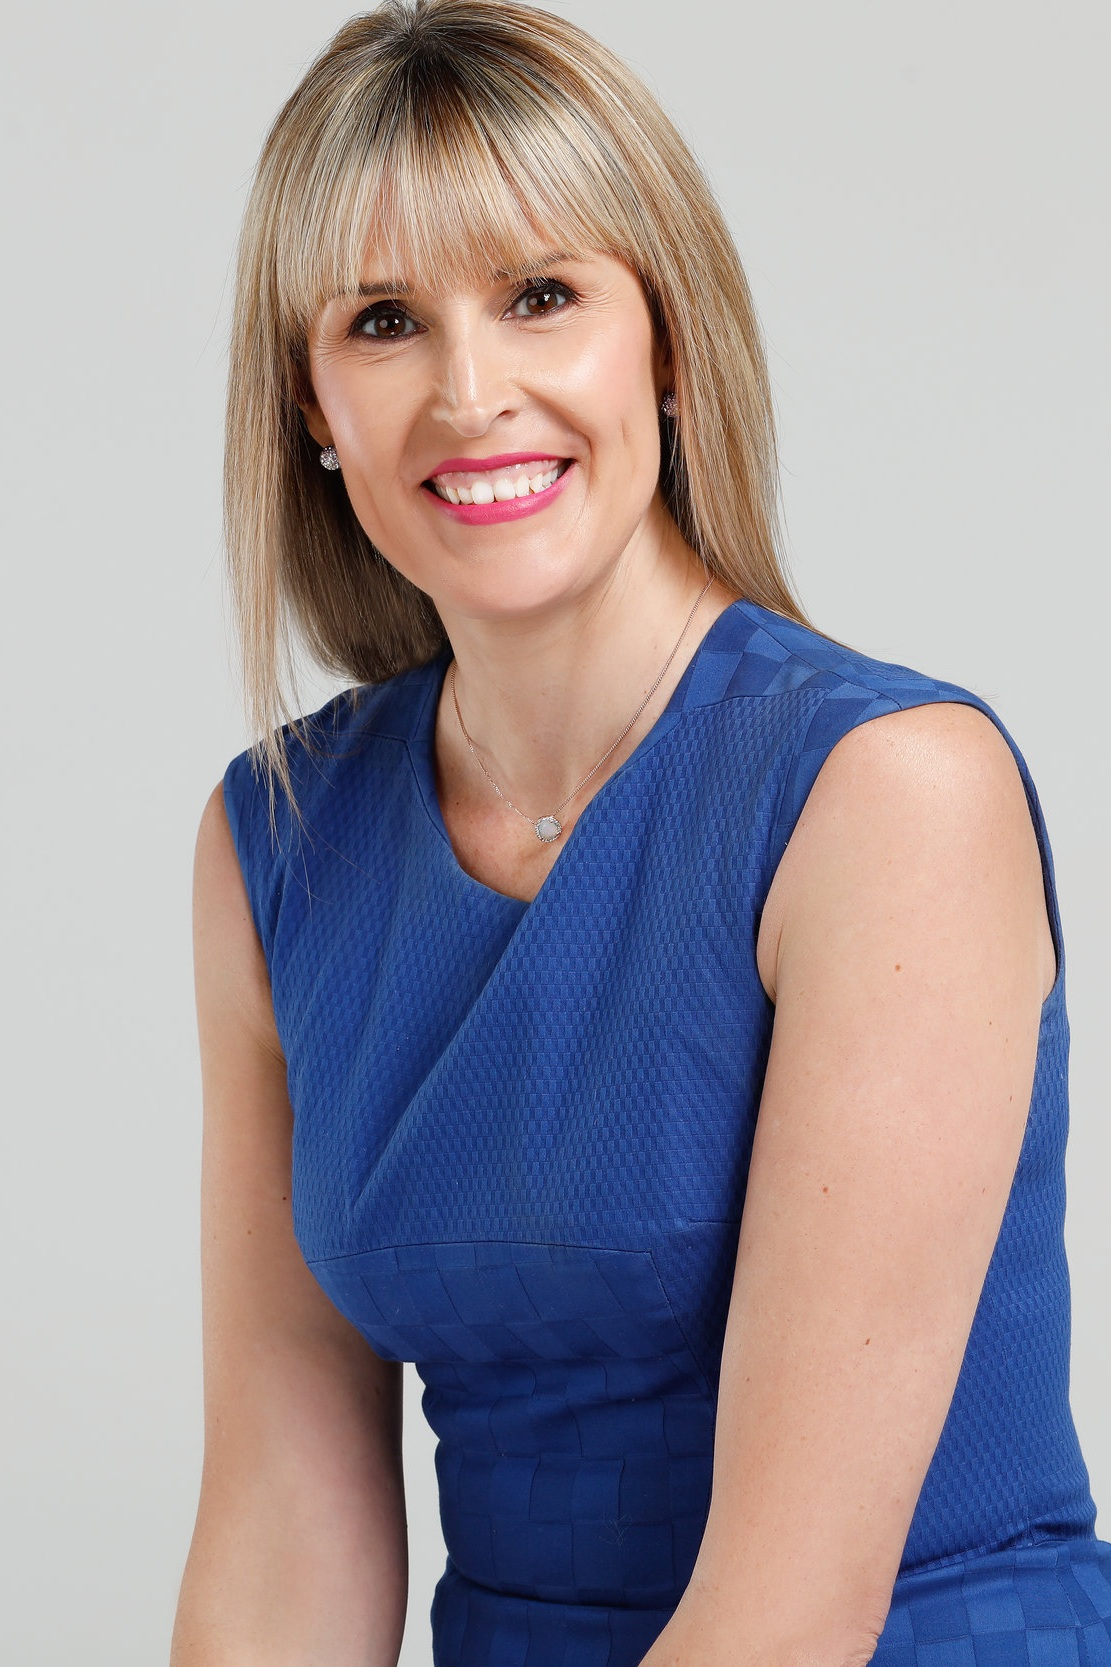 - Sharon is Australia's leading healing and loss expert sharing the lessons of life, transforming the fear of death and celebrating the power of love. She is the founder of 'The Love in Death' movement.